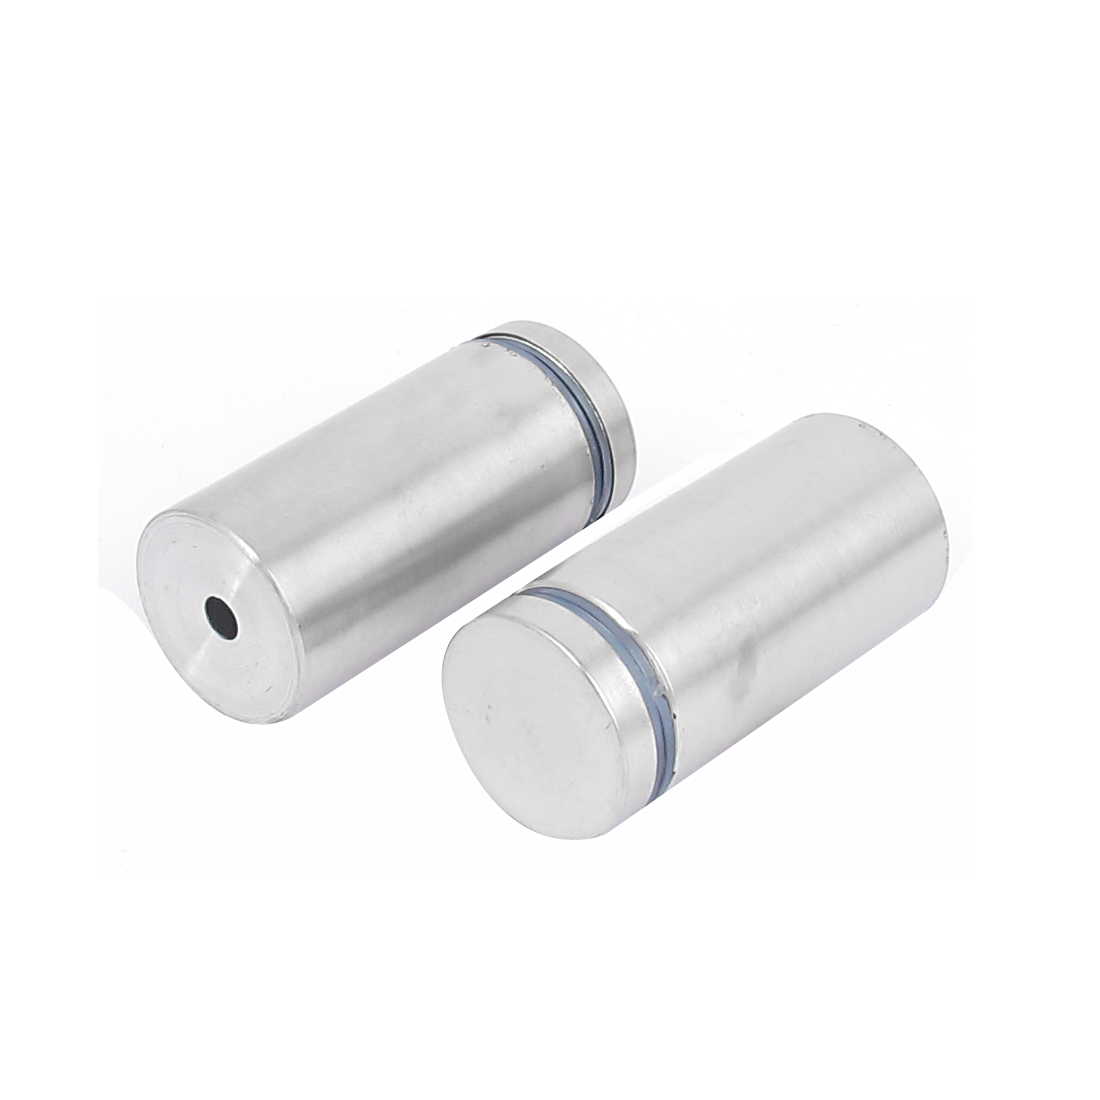 25mm x 50mm Stainless Steel Advertising Frameless Glass Standoff Pins Clamp 2pcs